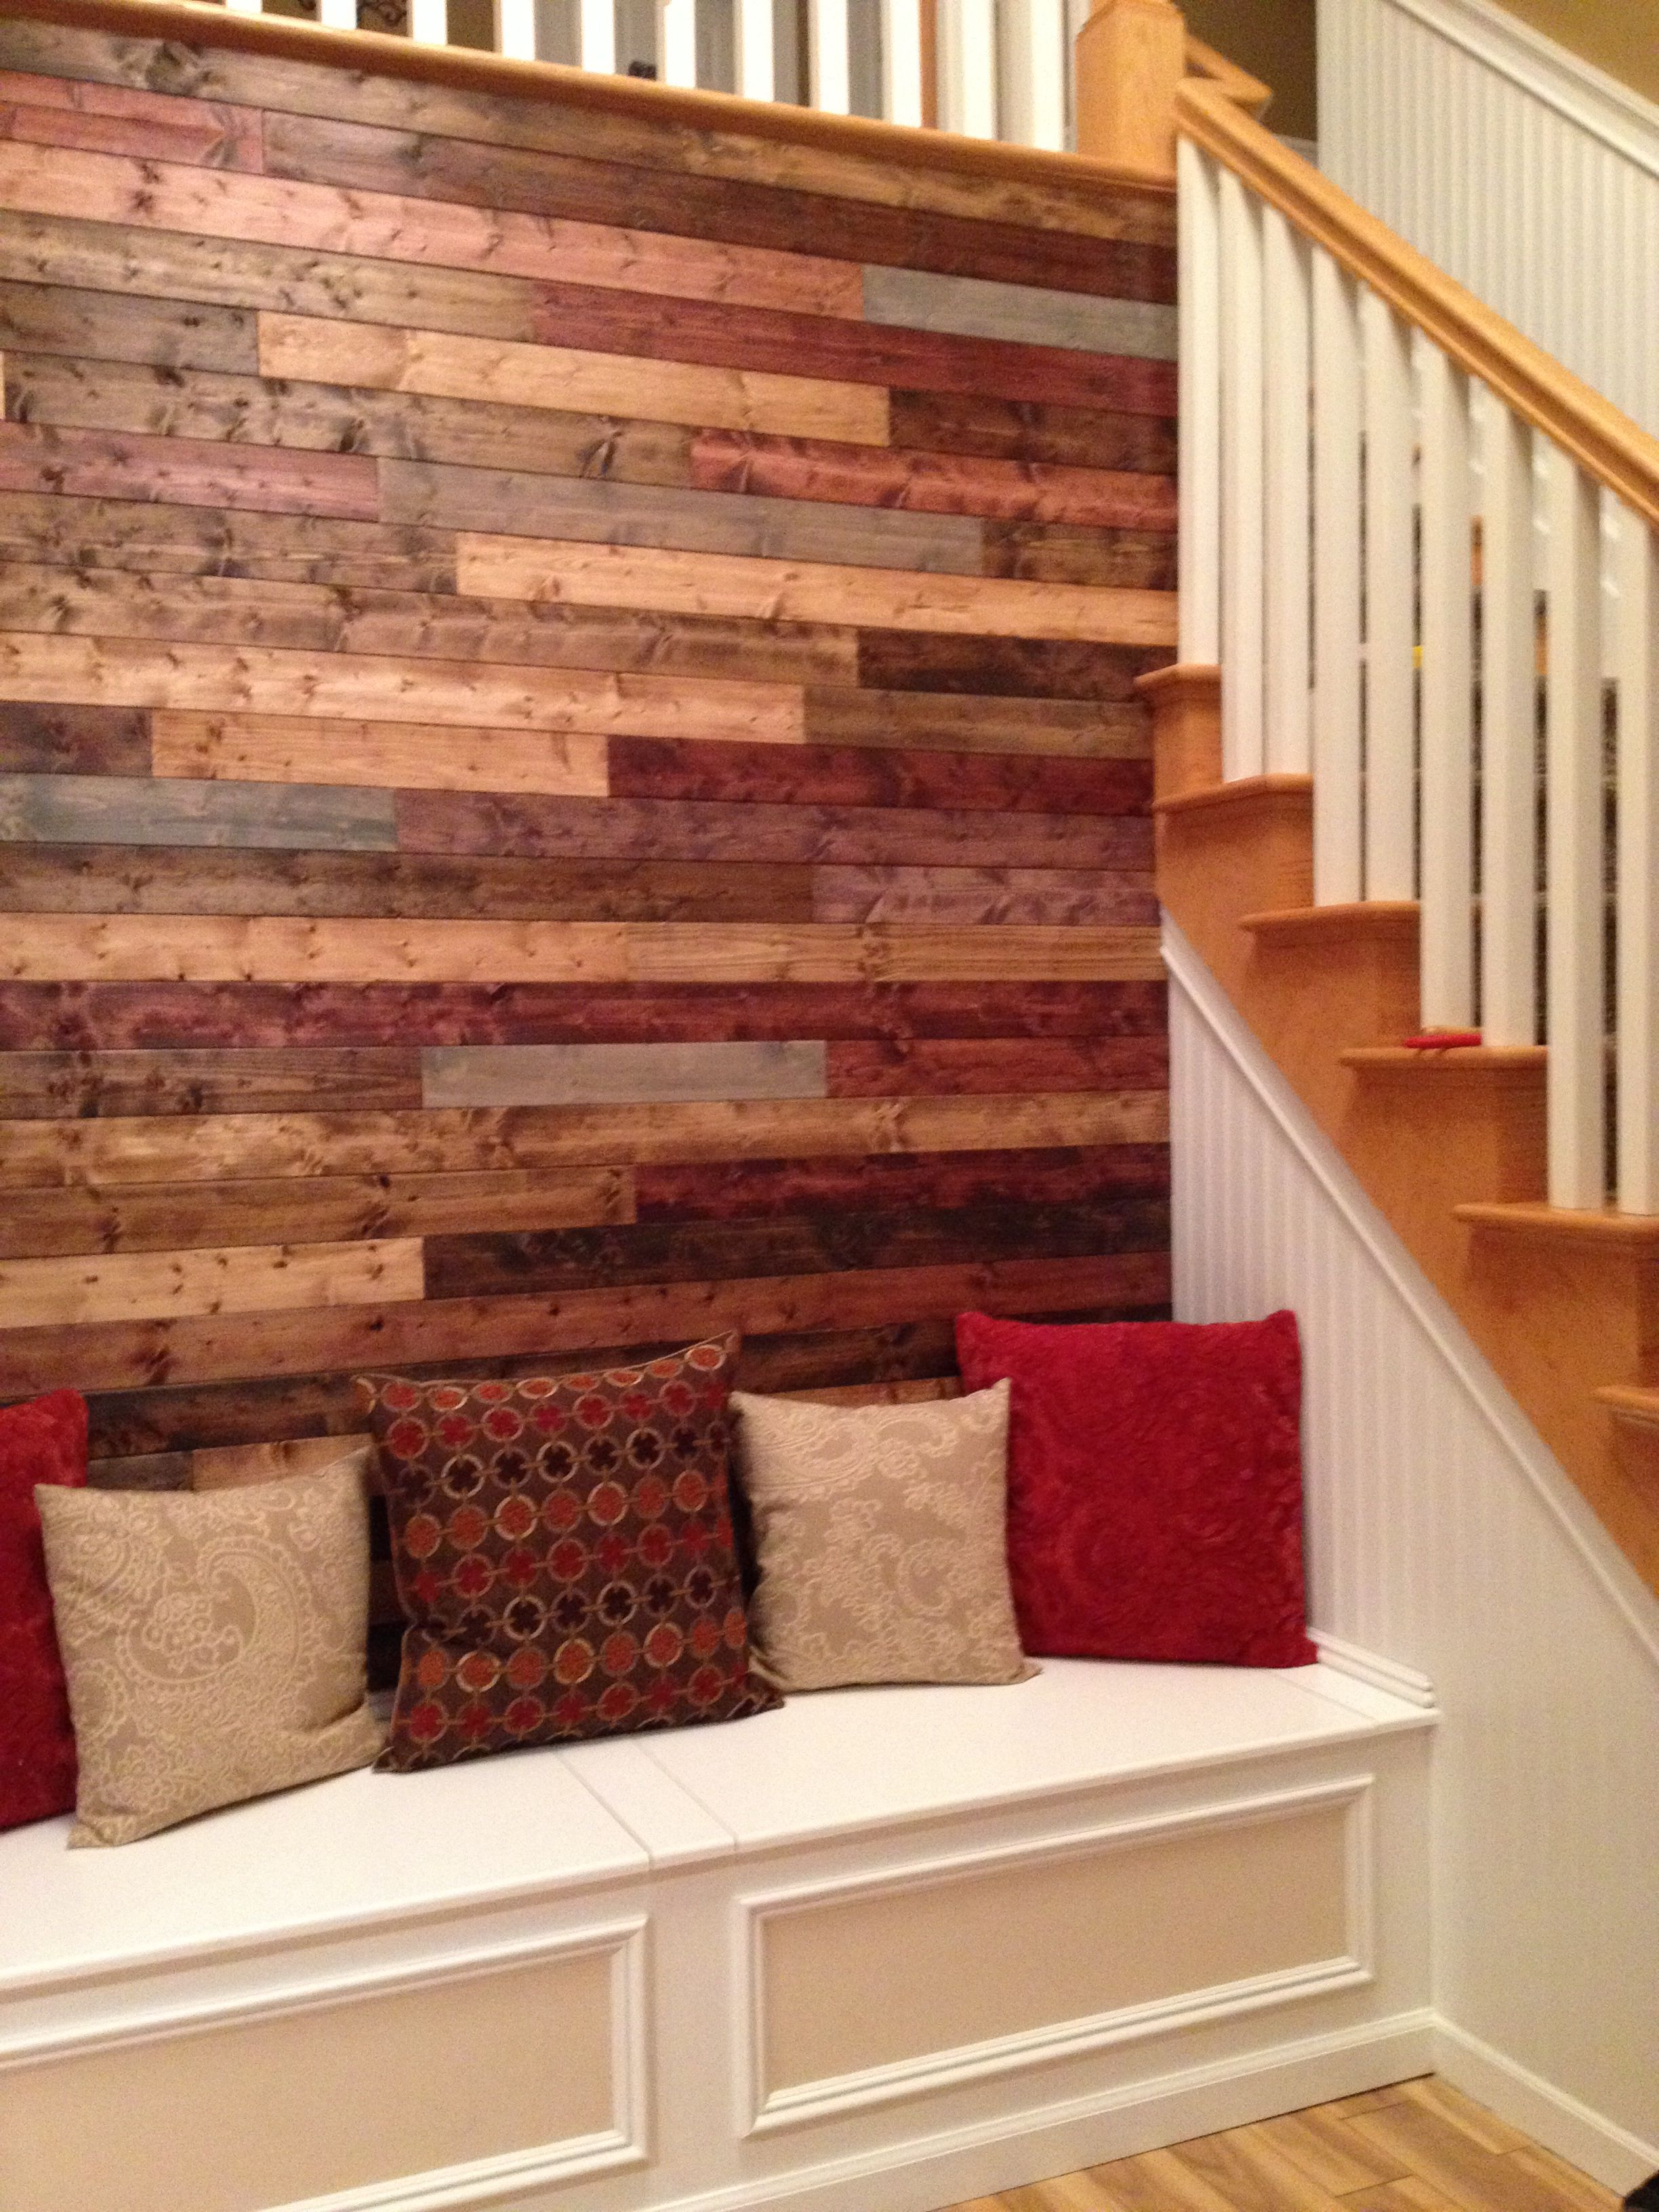 Stained Wood Wall Staining Wood Wooden Wall Design Wood Accent Wall